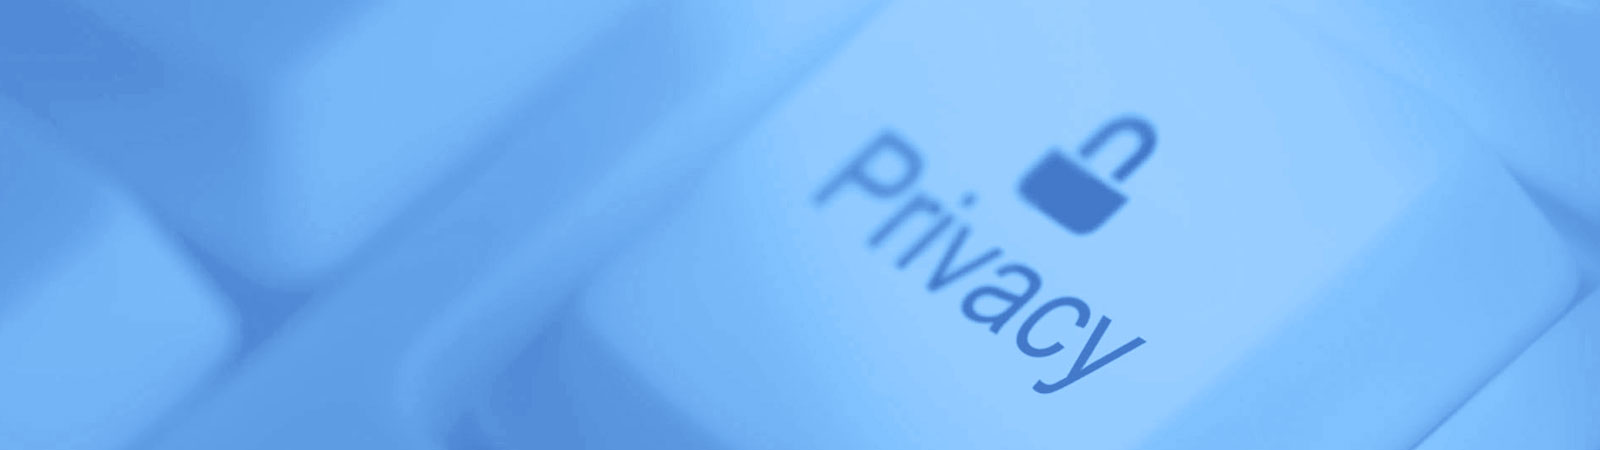 Privacy Policy Us Banner